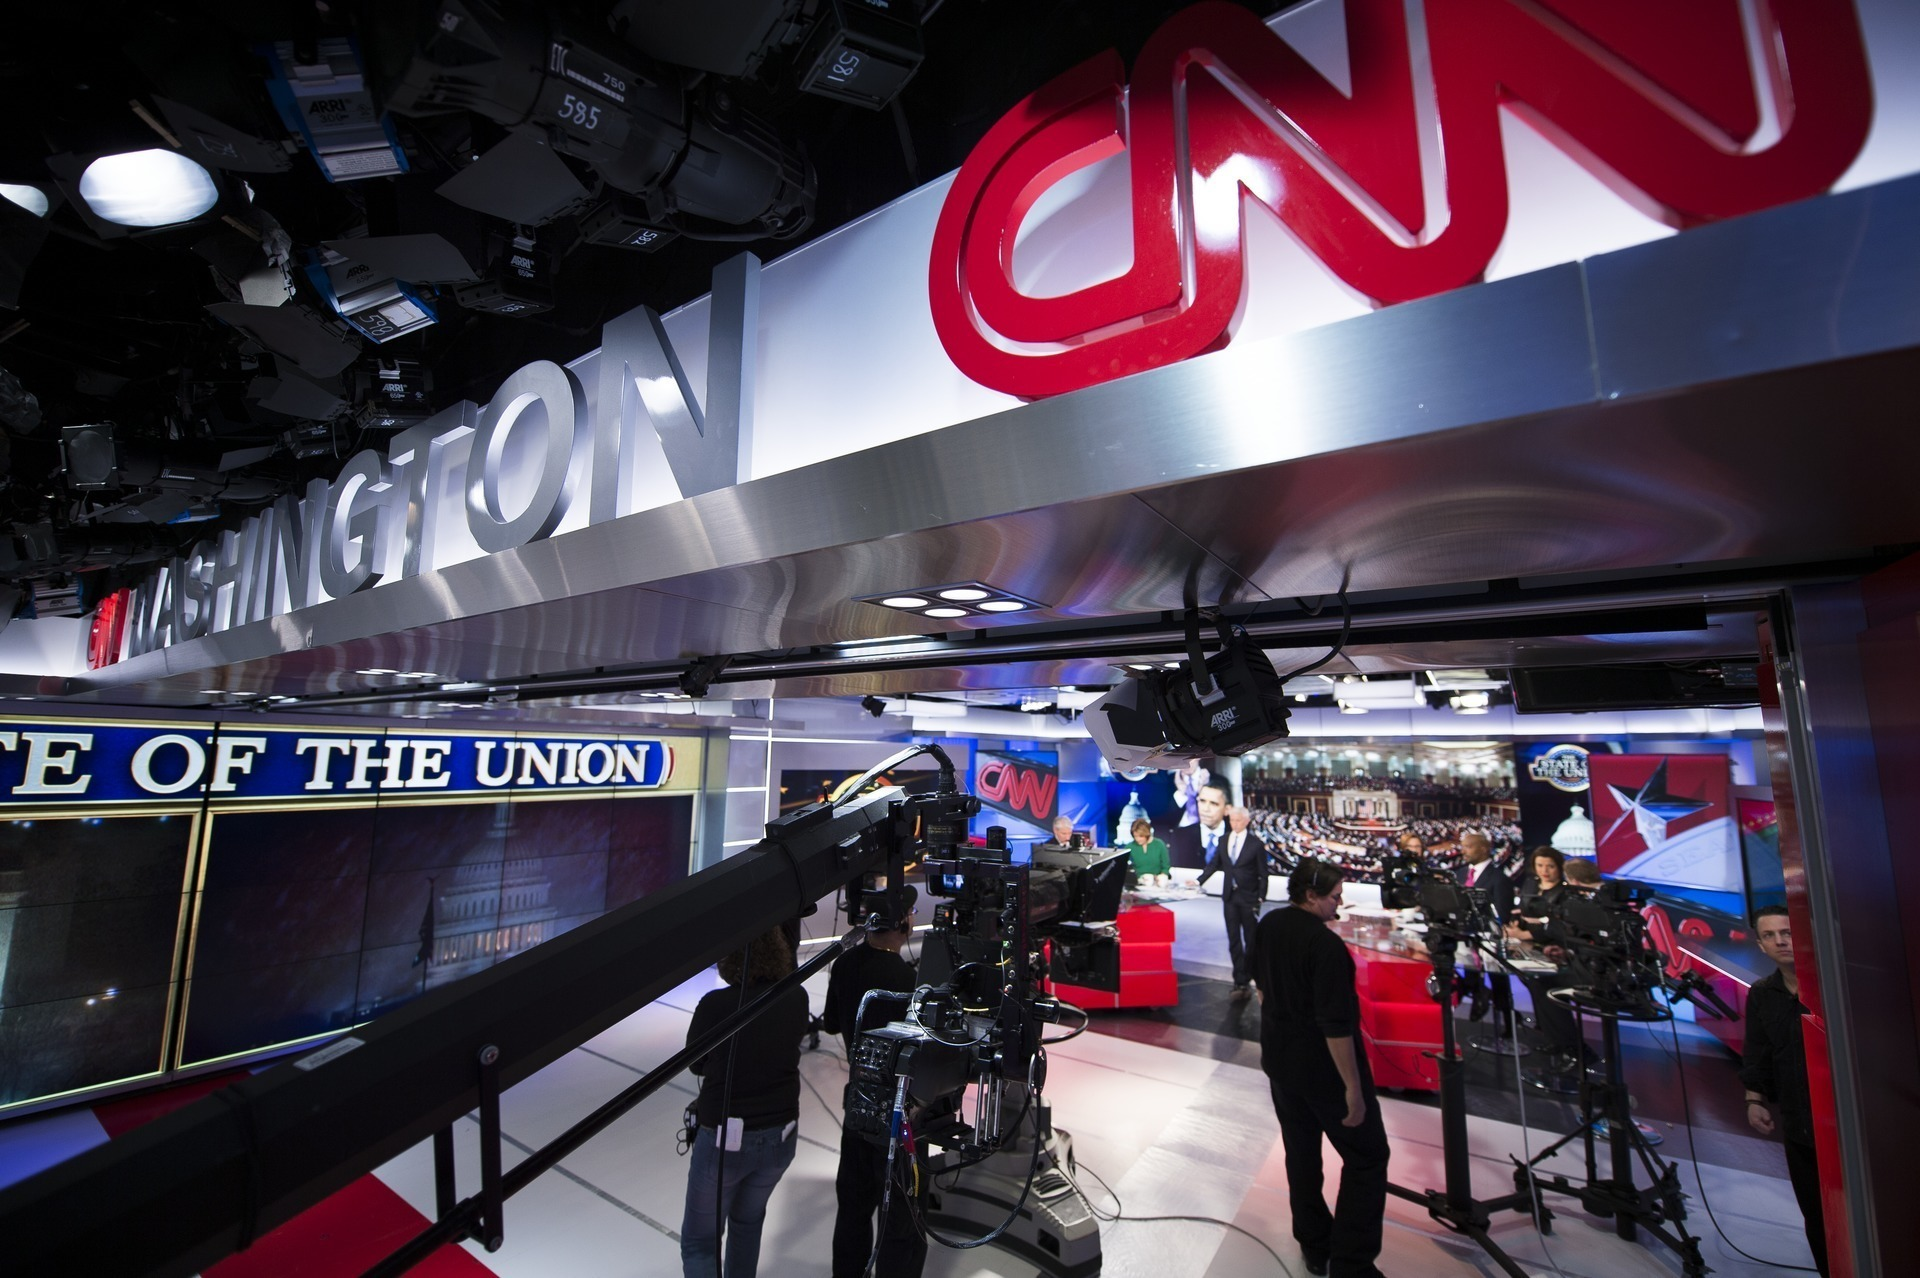 CNN to Provide Live Coverage of the State of the Union Address and the Republican Response